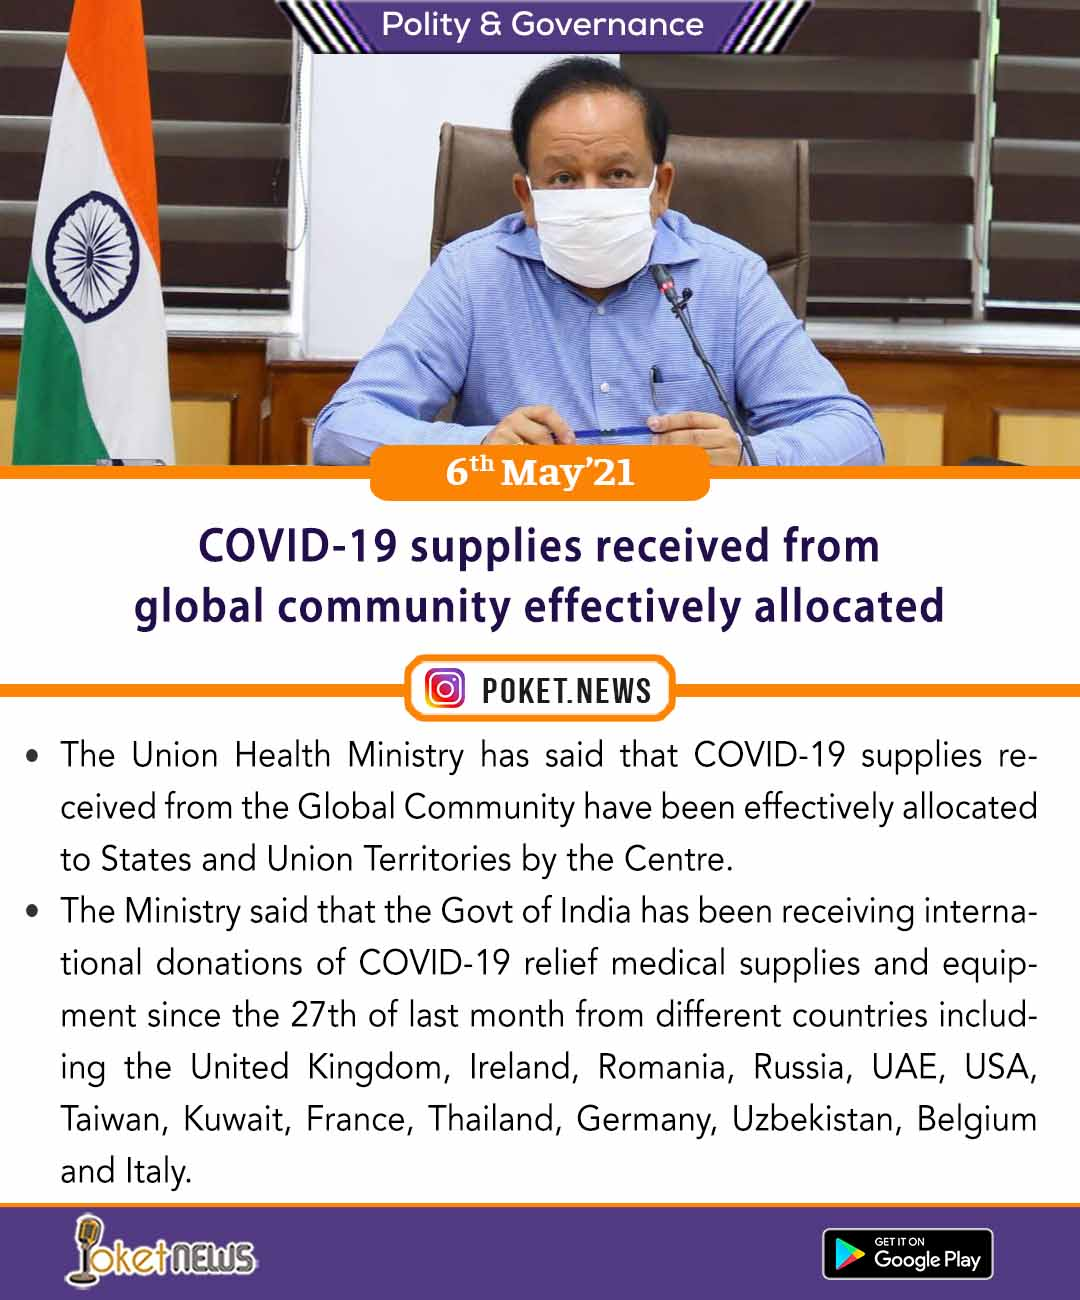 COVID-19 supplies received from global community effectively allocated